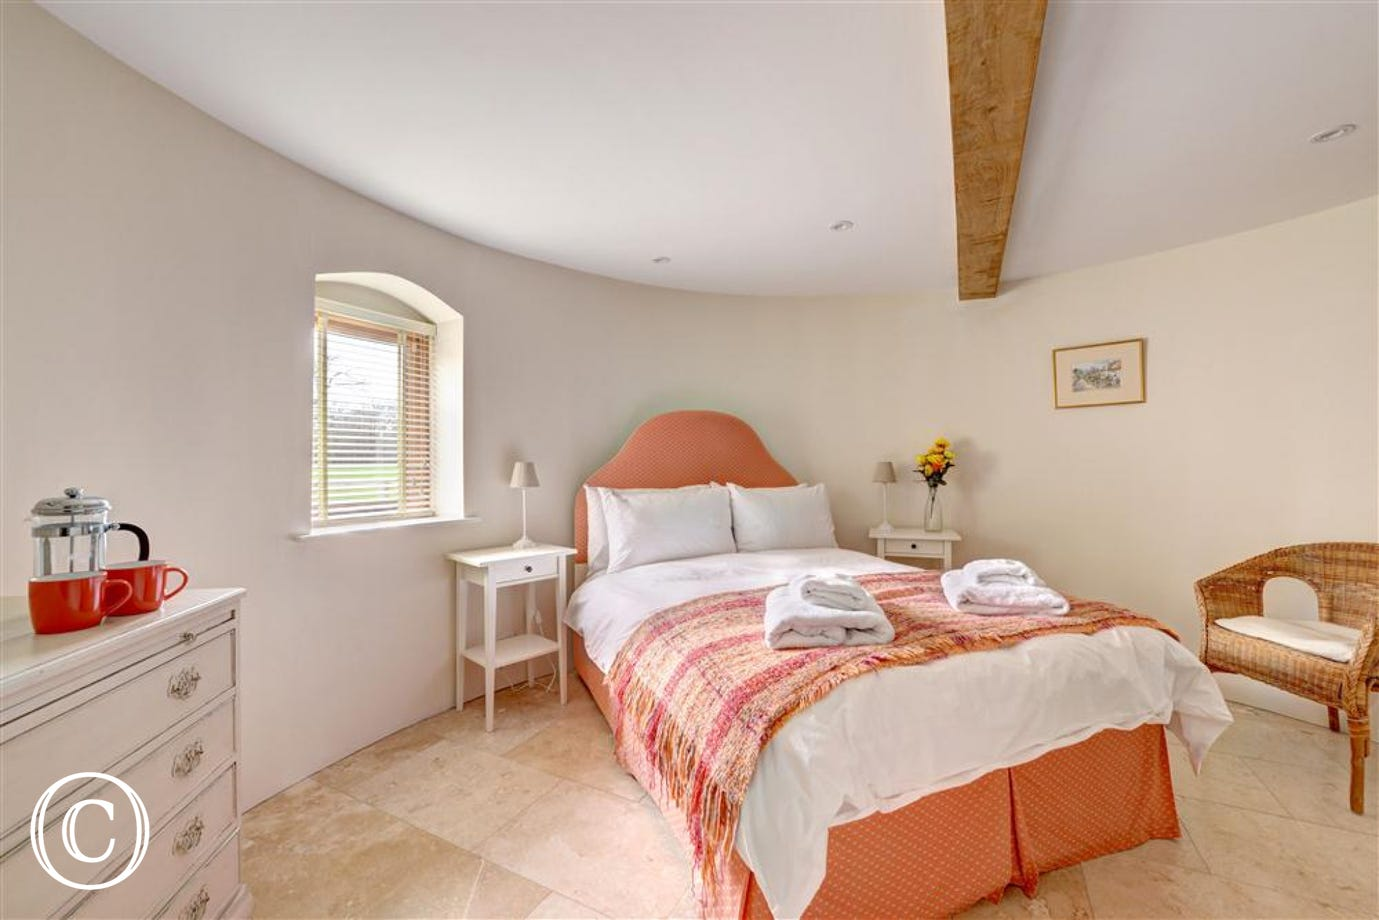 Double bedroom in the circular oast roundel, situated downstairs